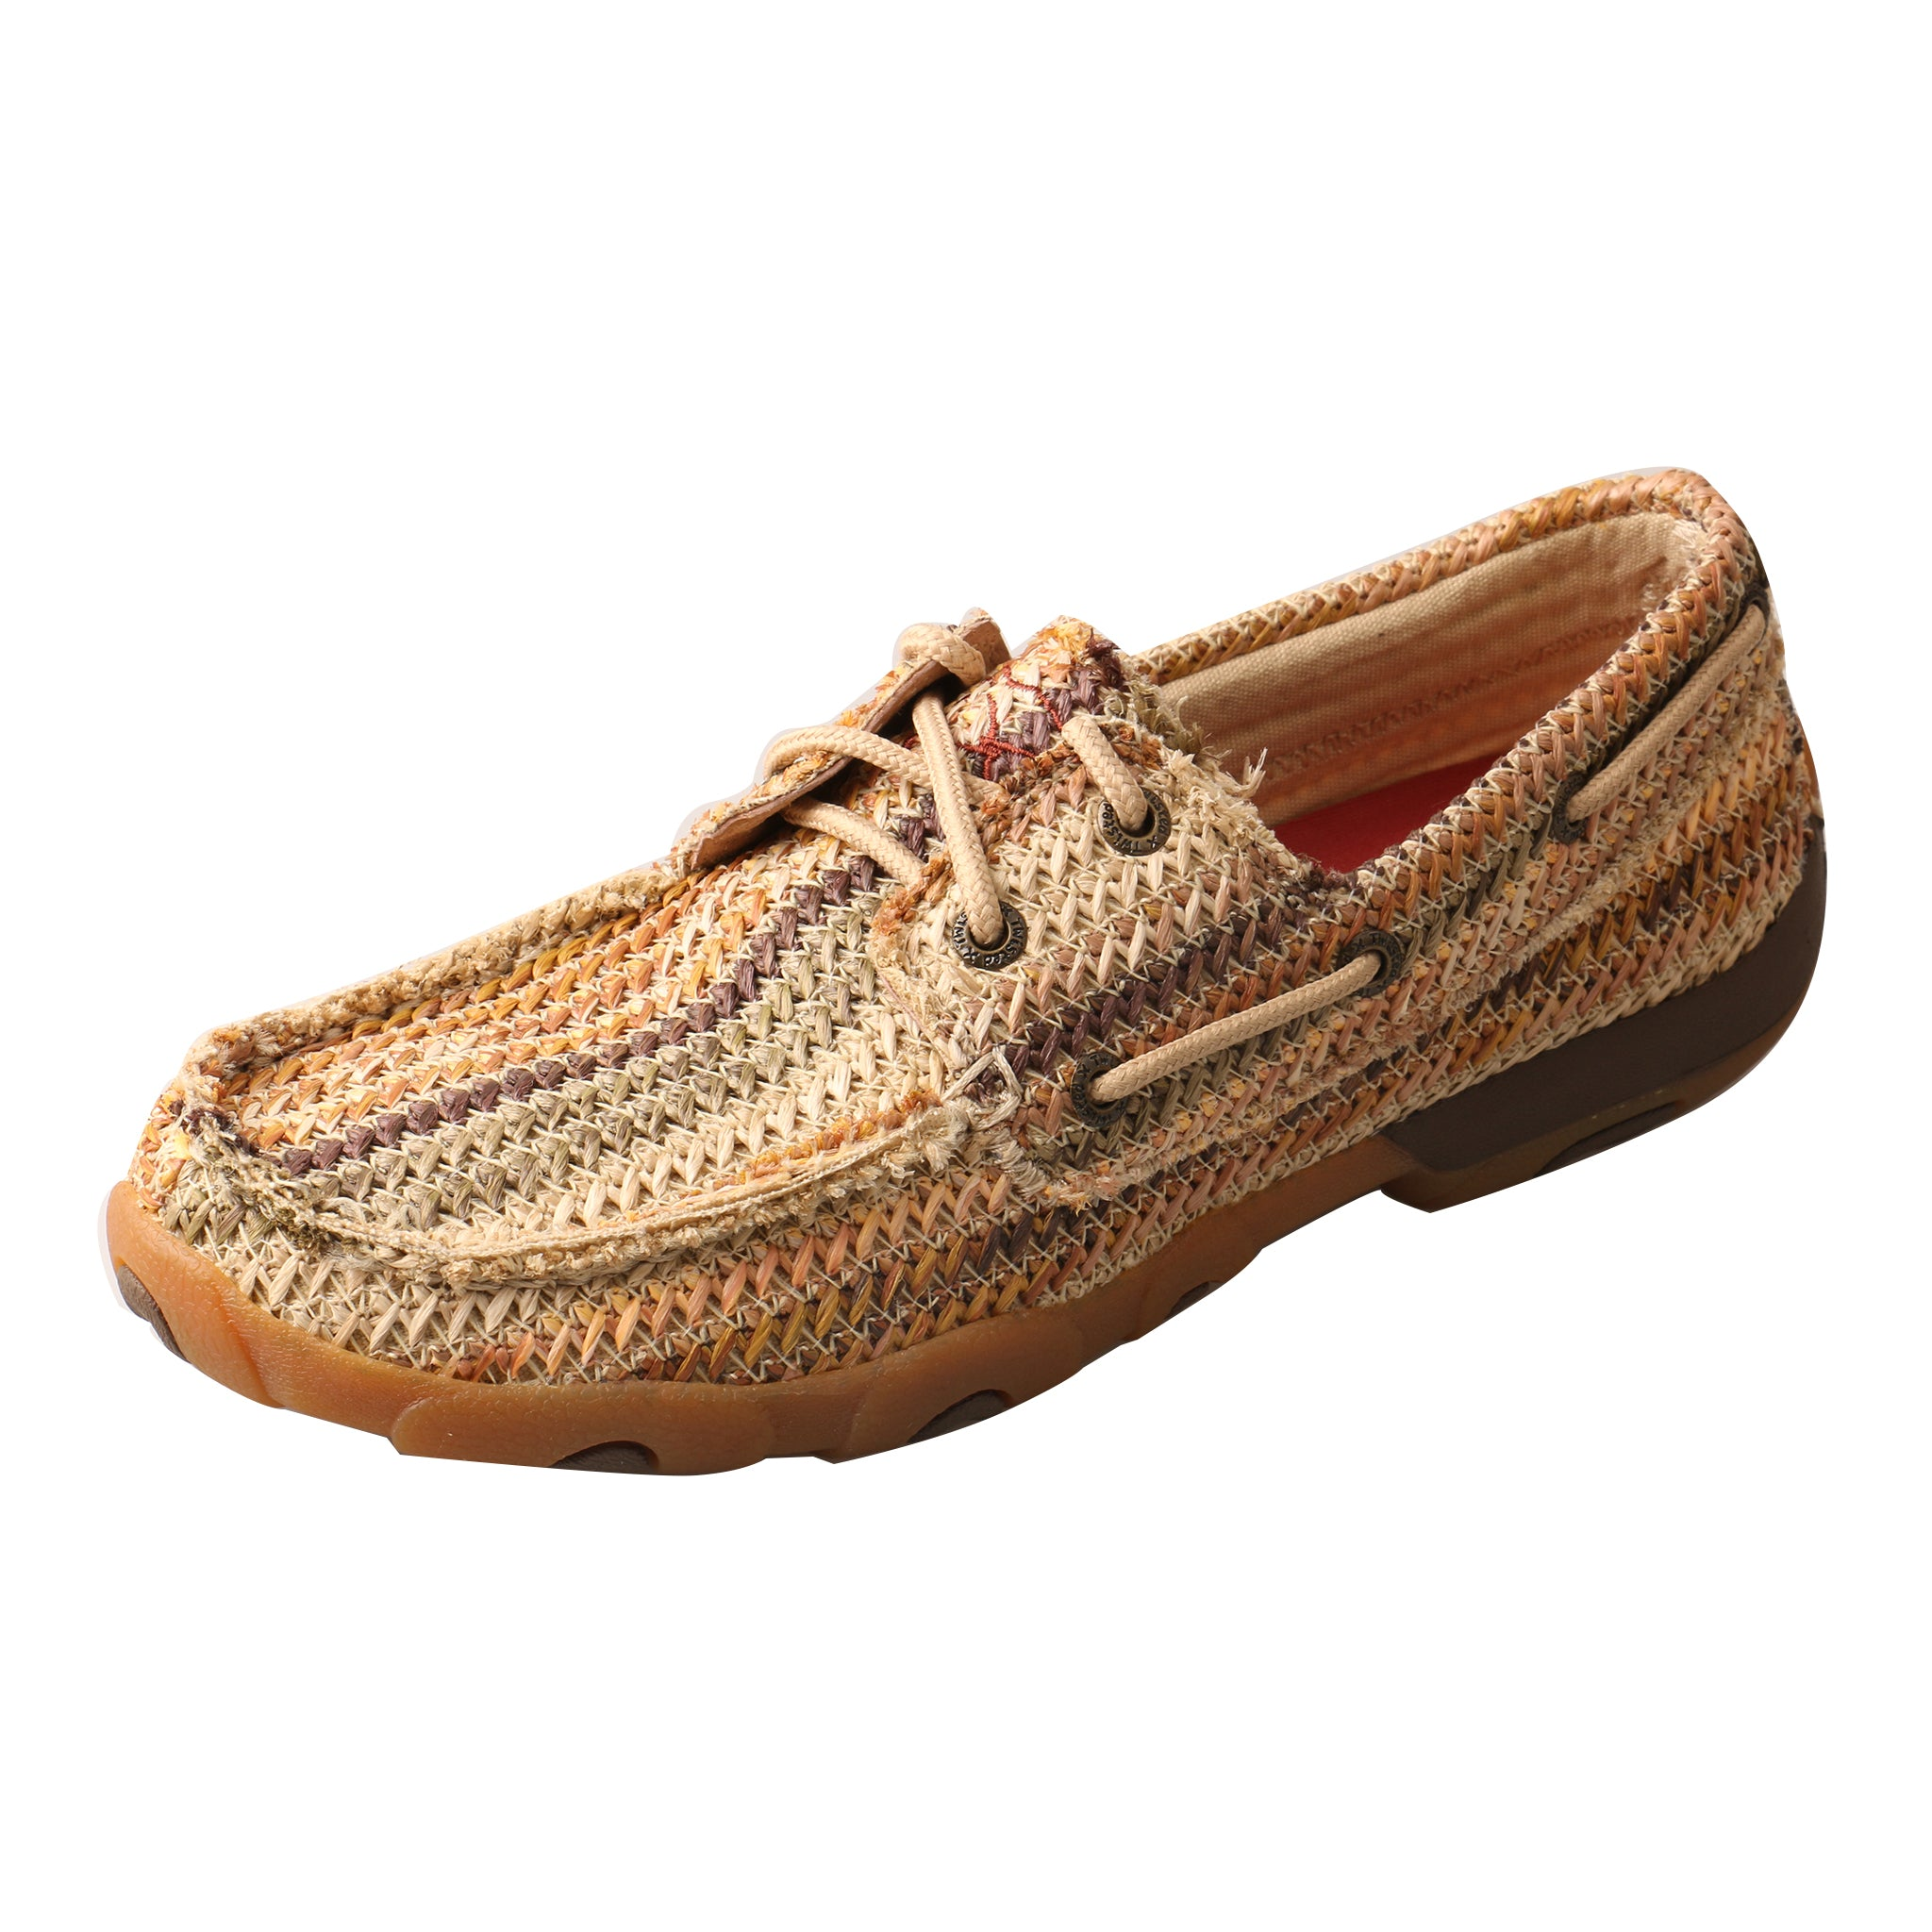 'Twisted X' WDM0084 - Weave Driving Moccasin - Multi Earth Tones